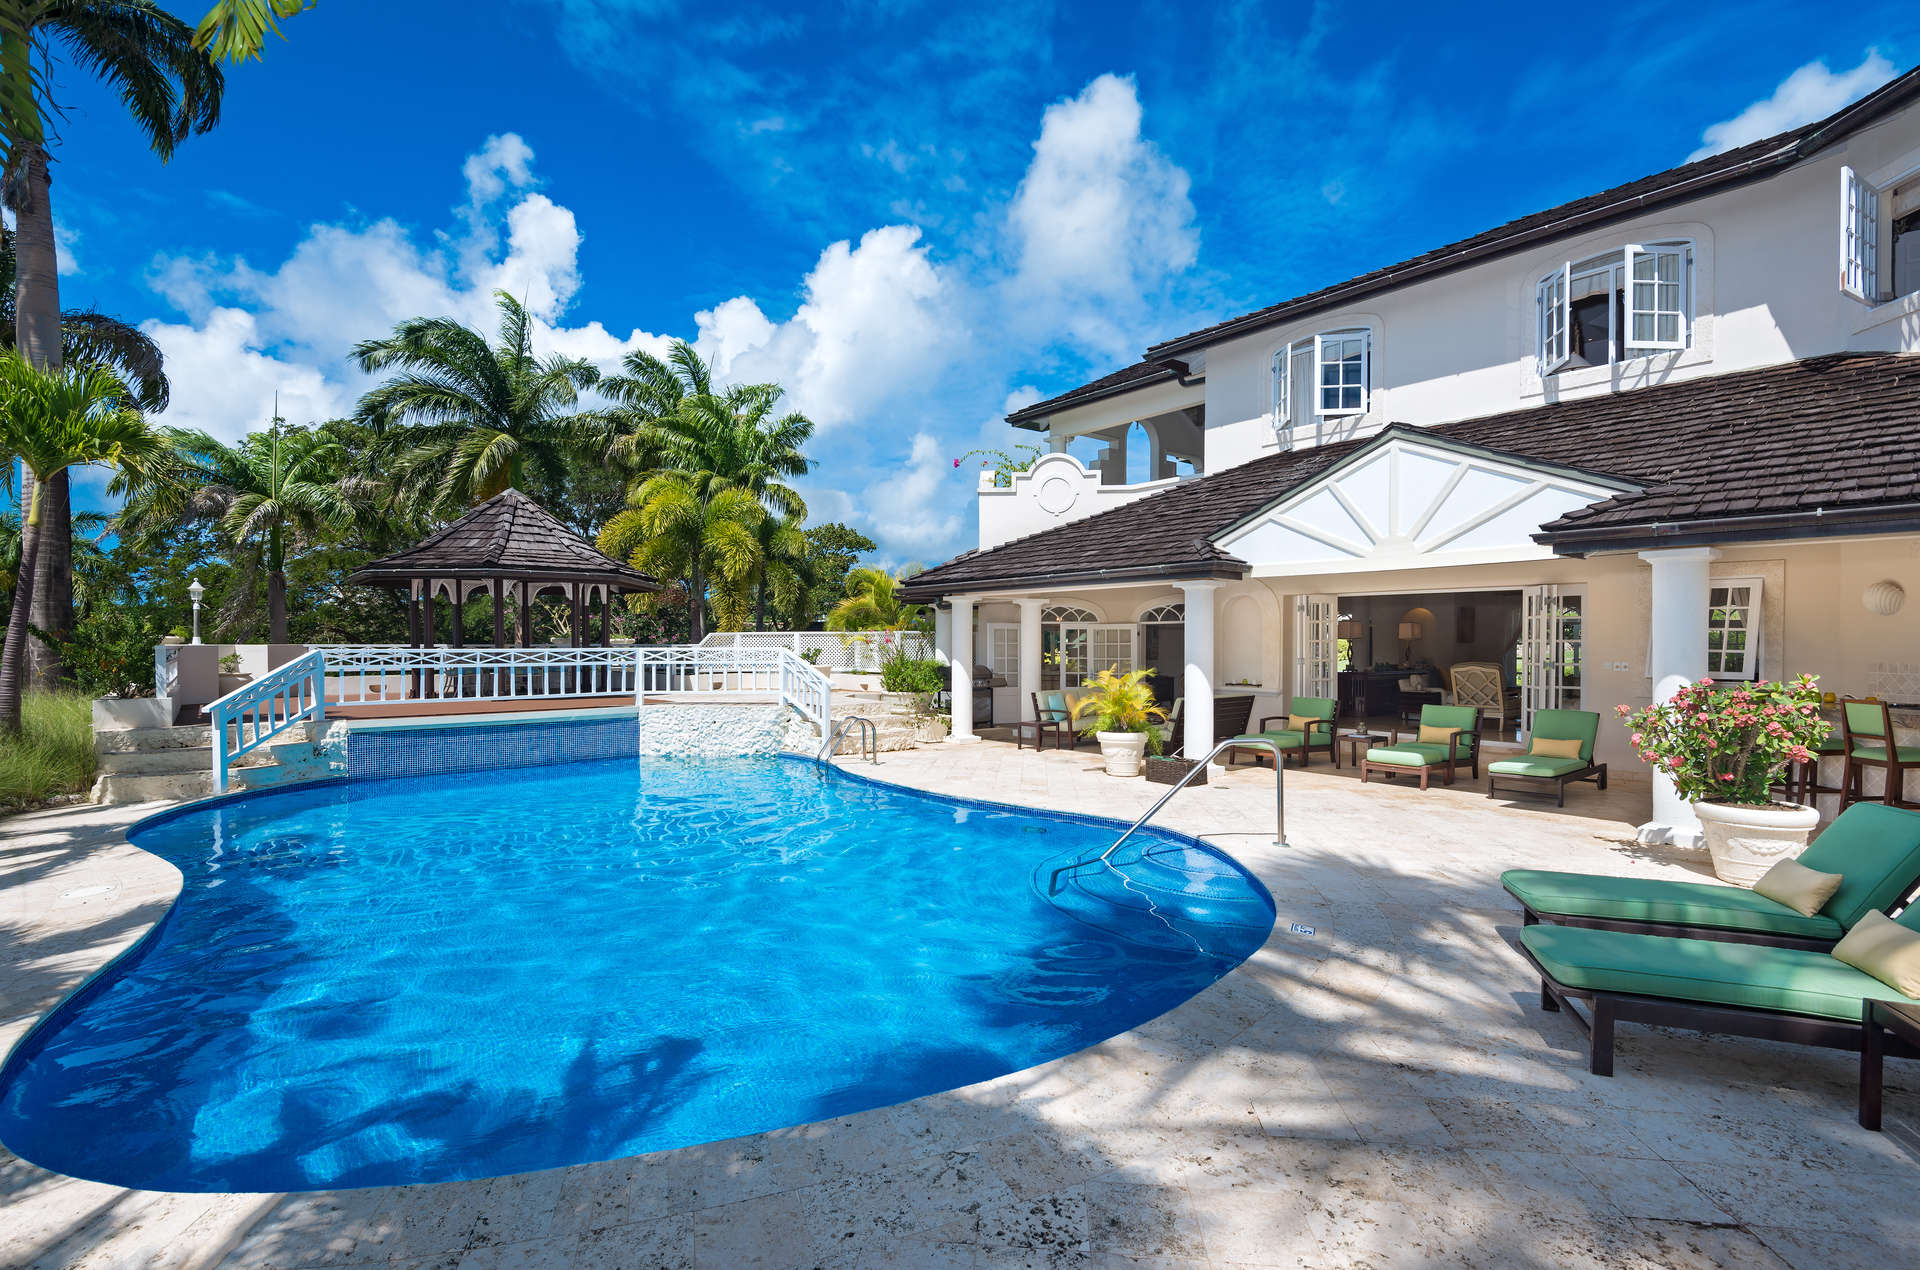 Luxury villa rentals caribbean - Barbados - St james - Royal westmoreland golf resort - Seventh Heaven | Palm Ridge 18 - Image 1/7